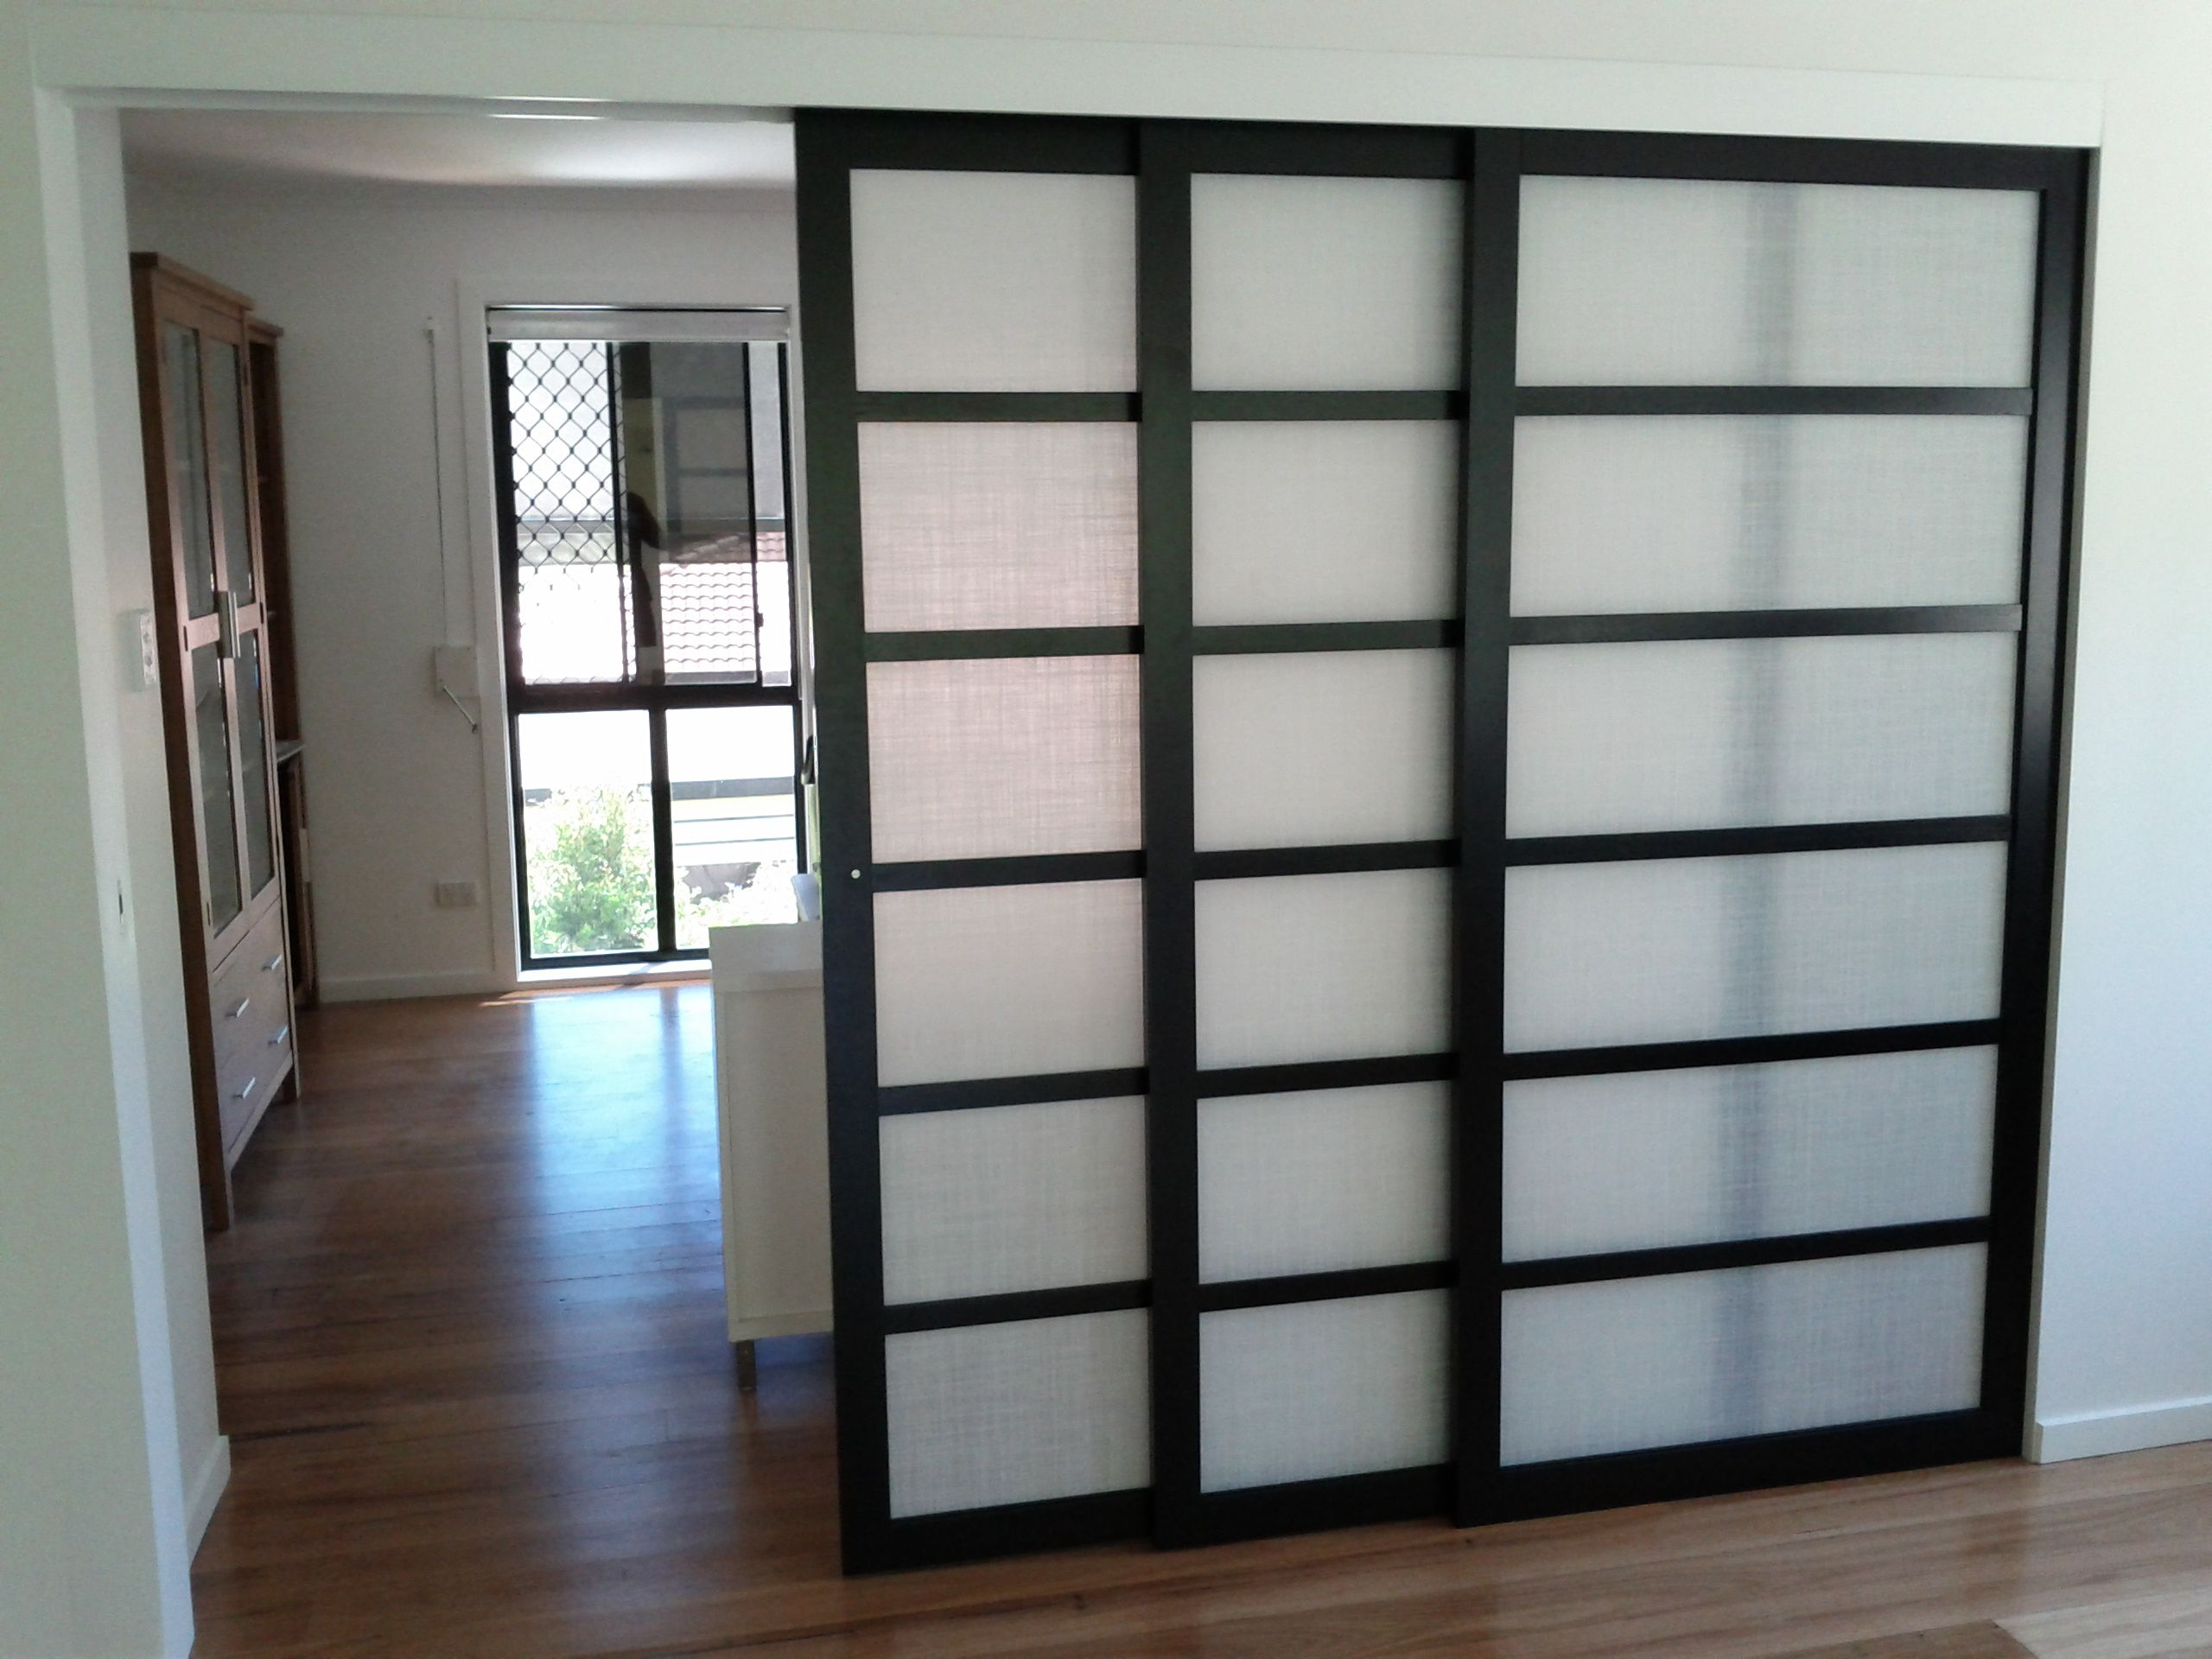 Amazing Japanese Sliding Doors Design Wooden With New Idea Material Usage Applied In Rooms Finished Flooring White